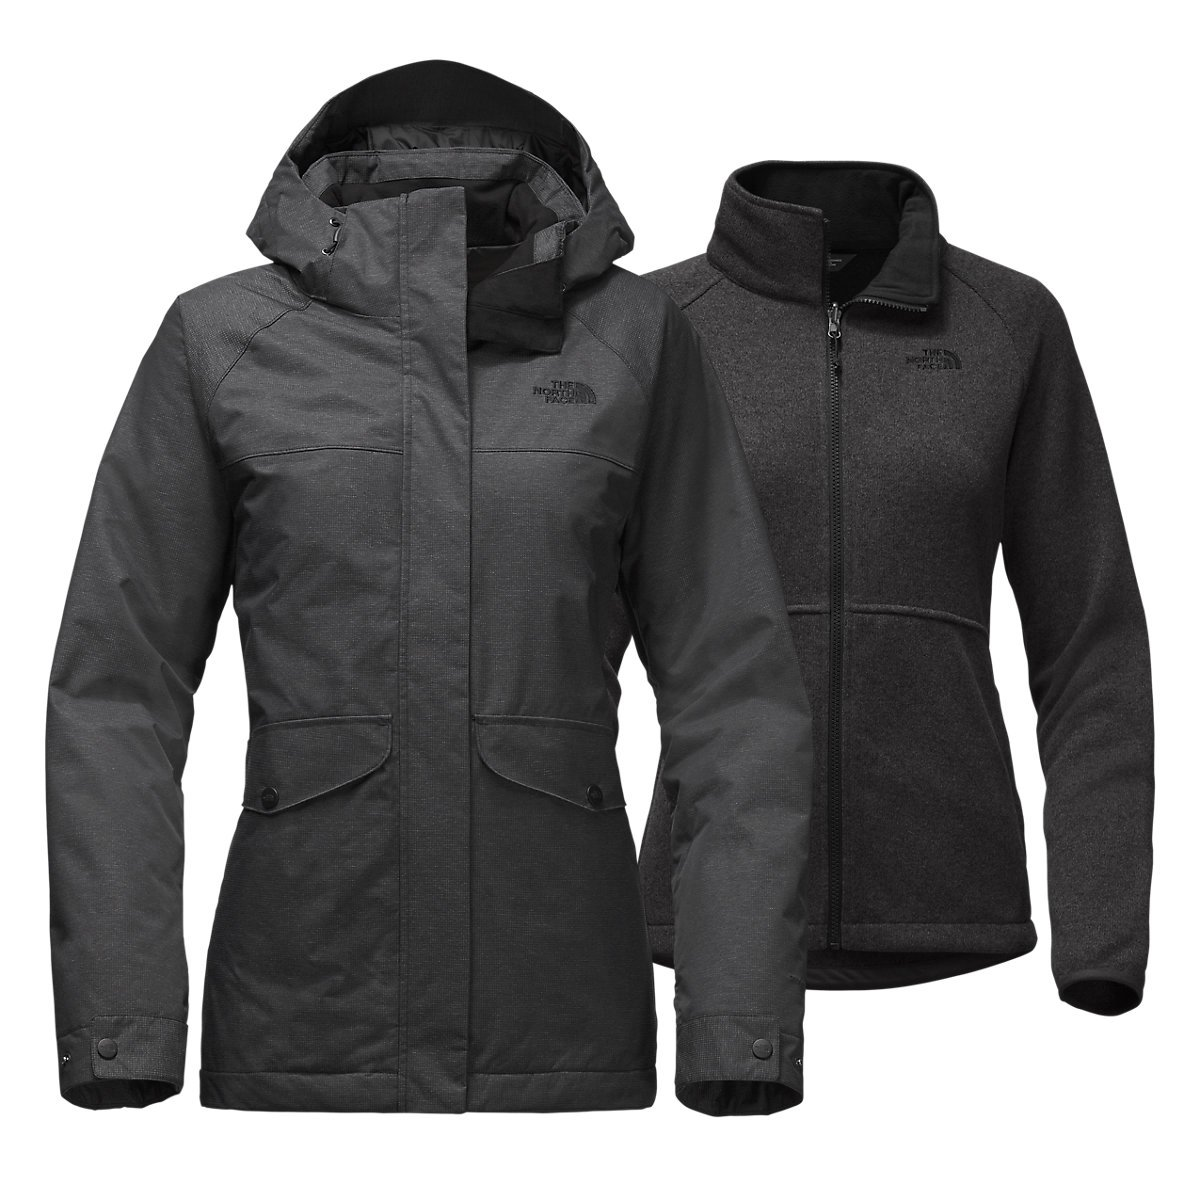 North Face Merriwood Triclimate Jacket Womens Style : A2VH8-KS7 Size : Large